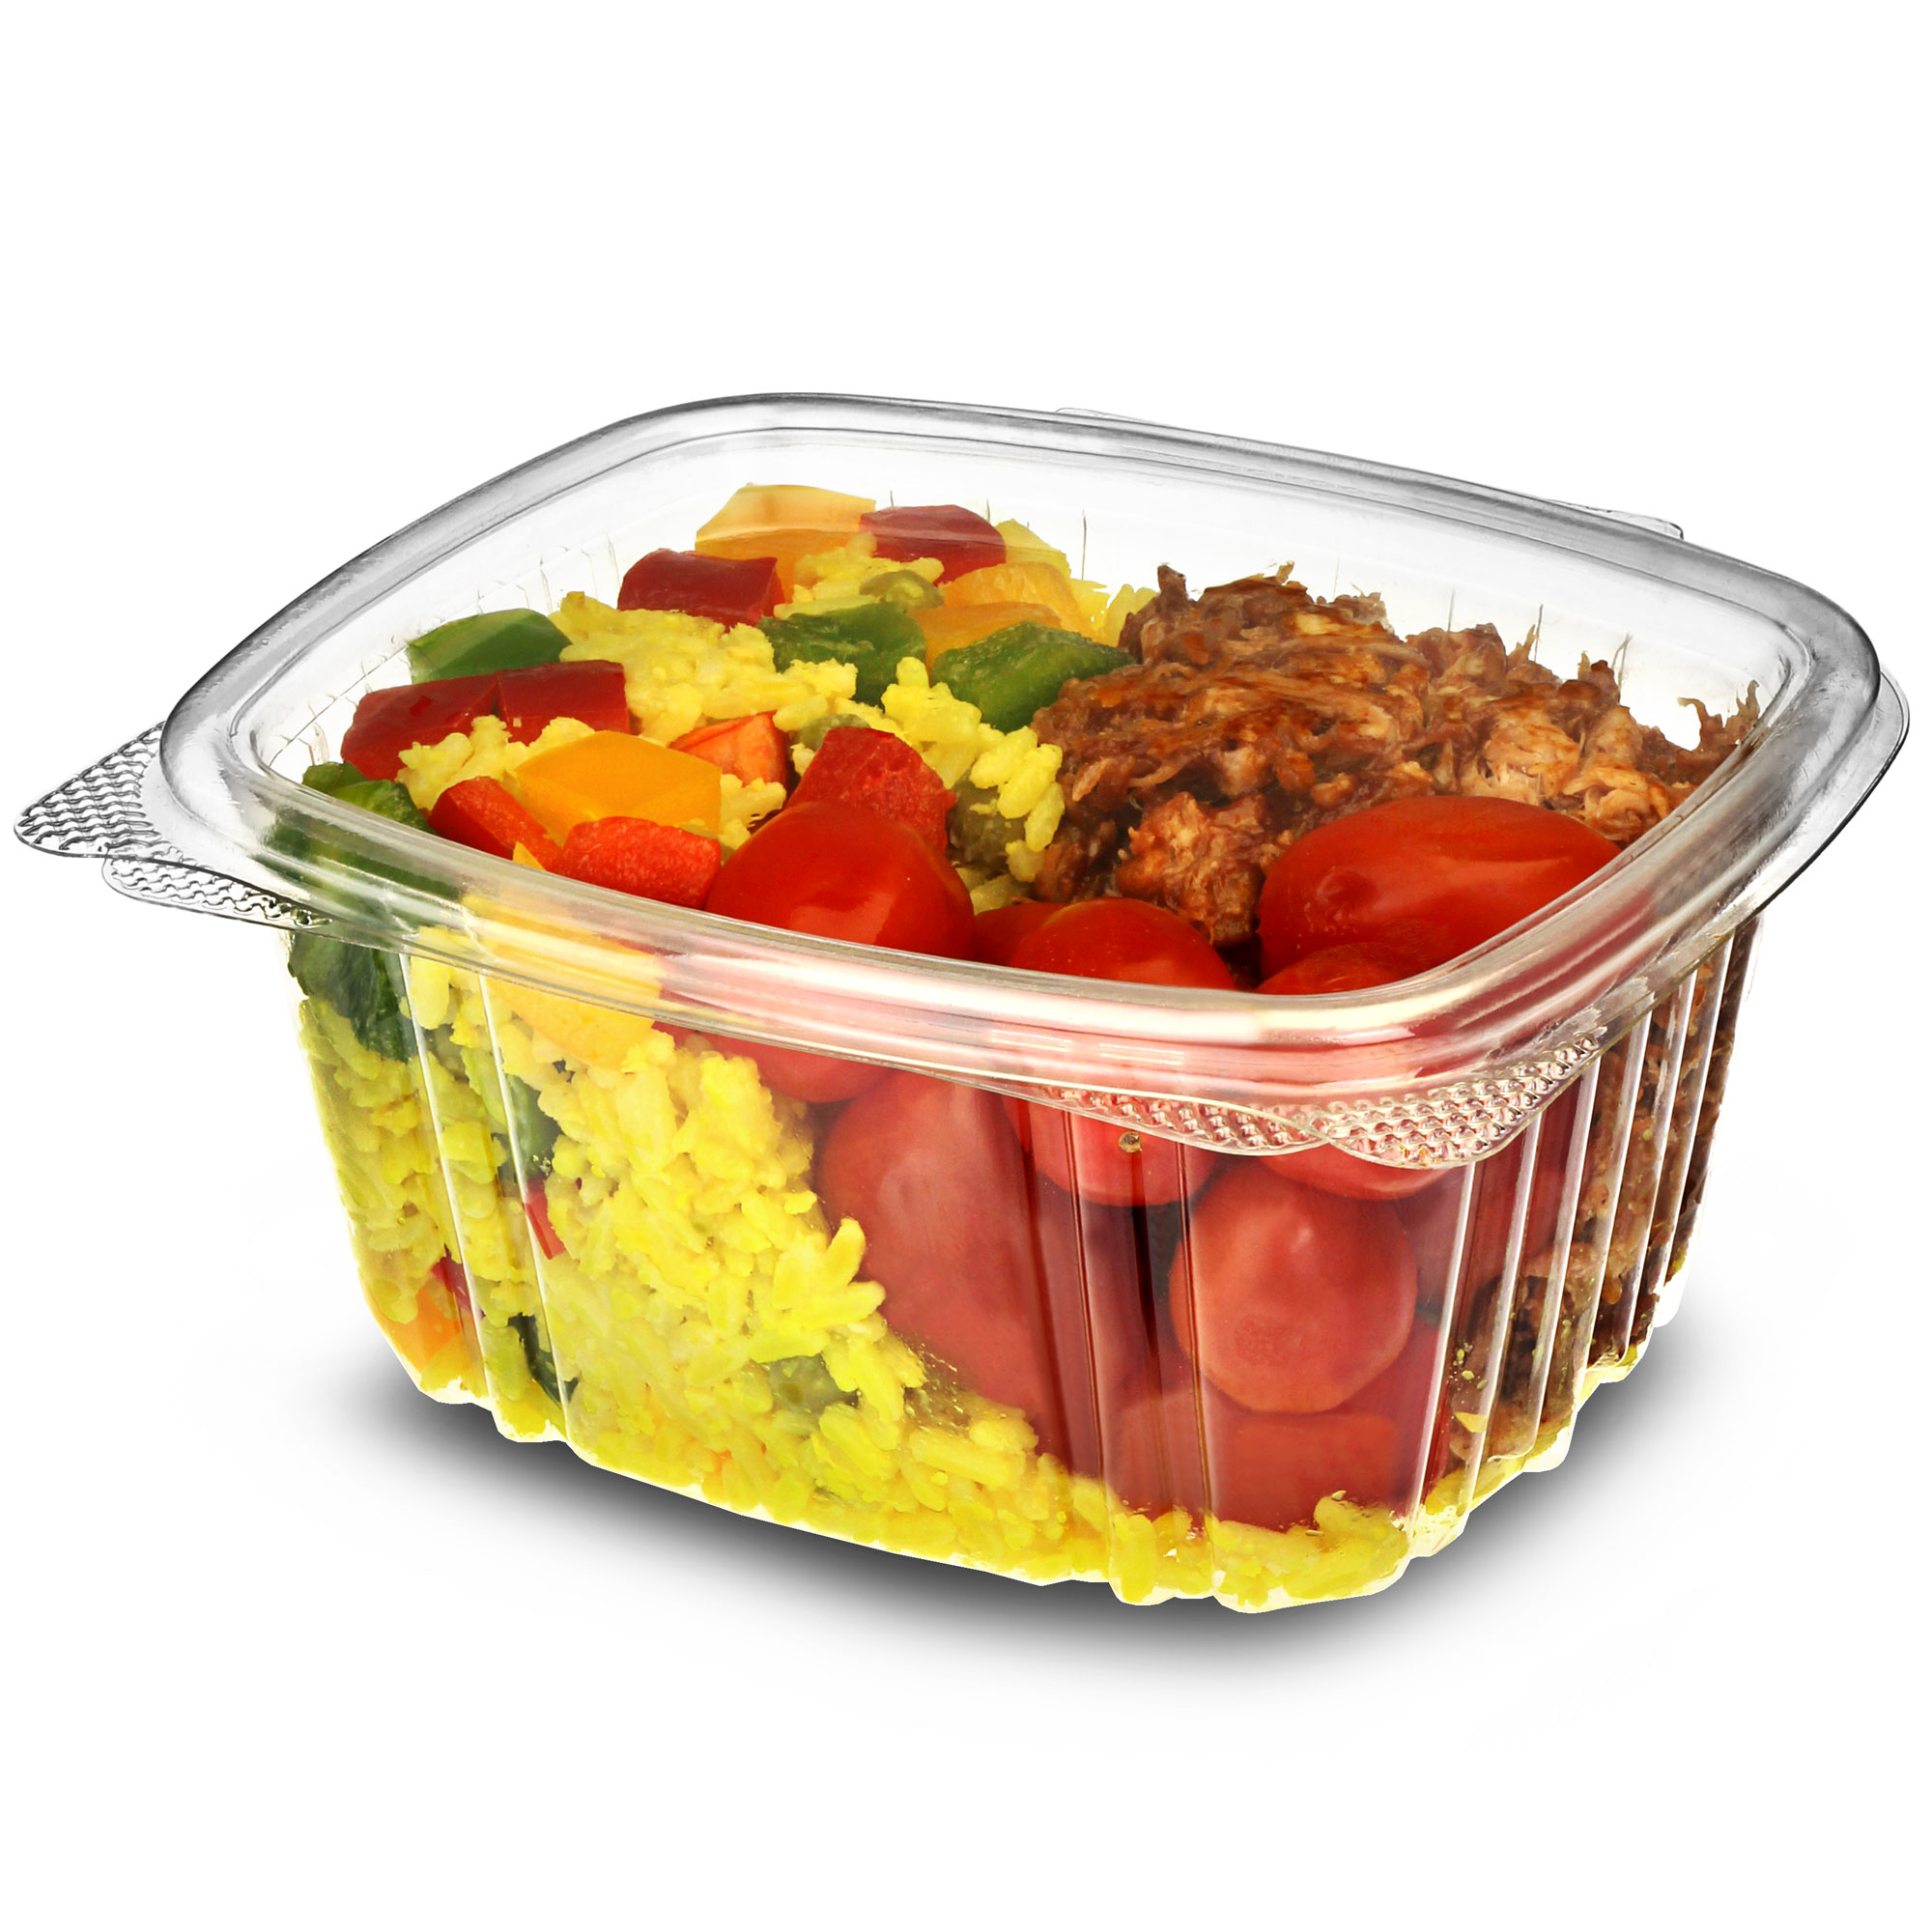 Disposable hinged salad container 16oz takeaway box for Perfect kitchen harrogate takeaway